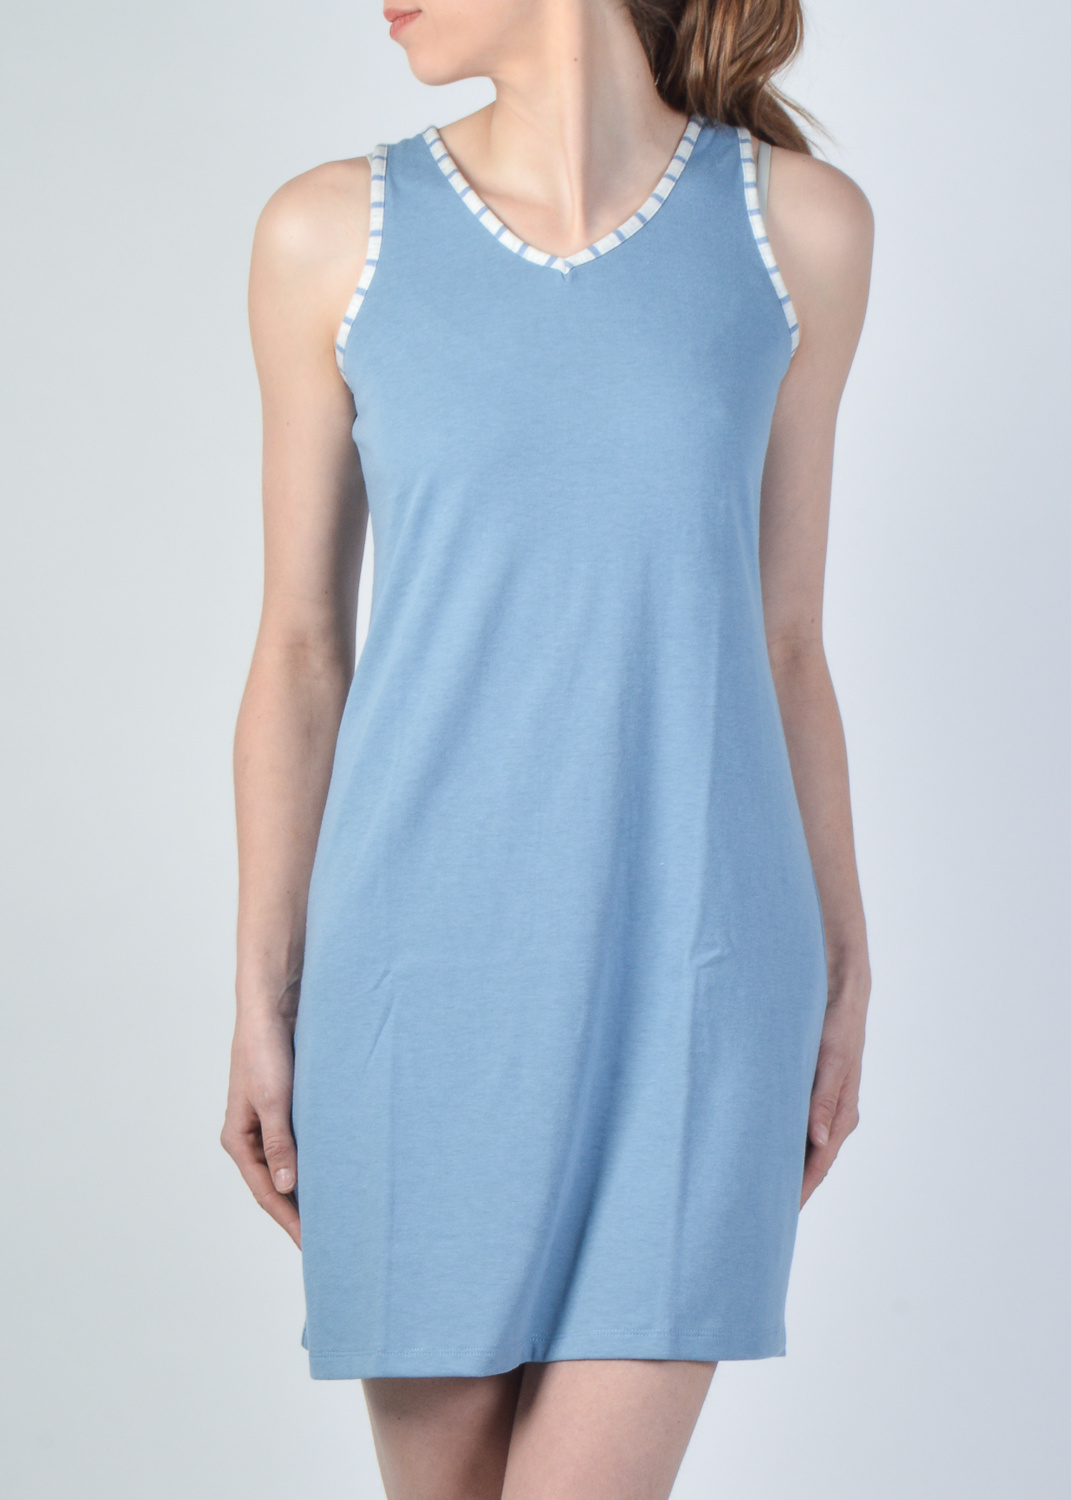 2 Pieces Night Gown Set